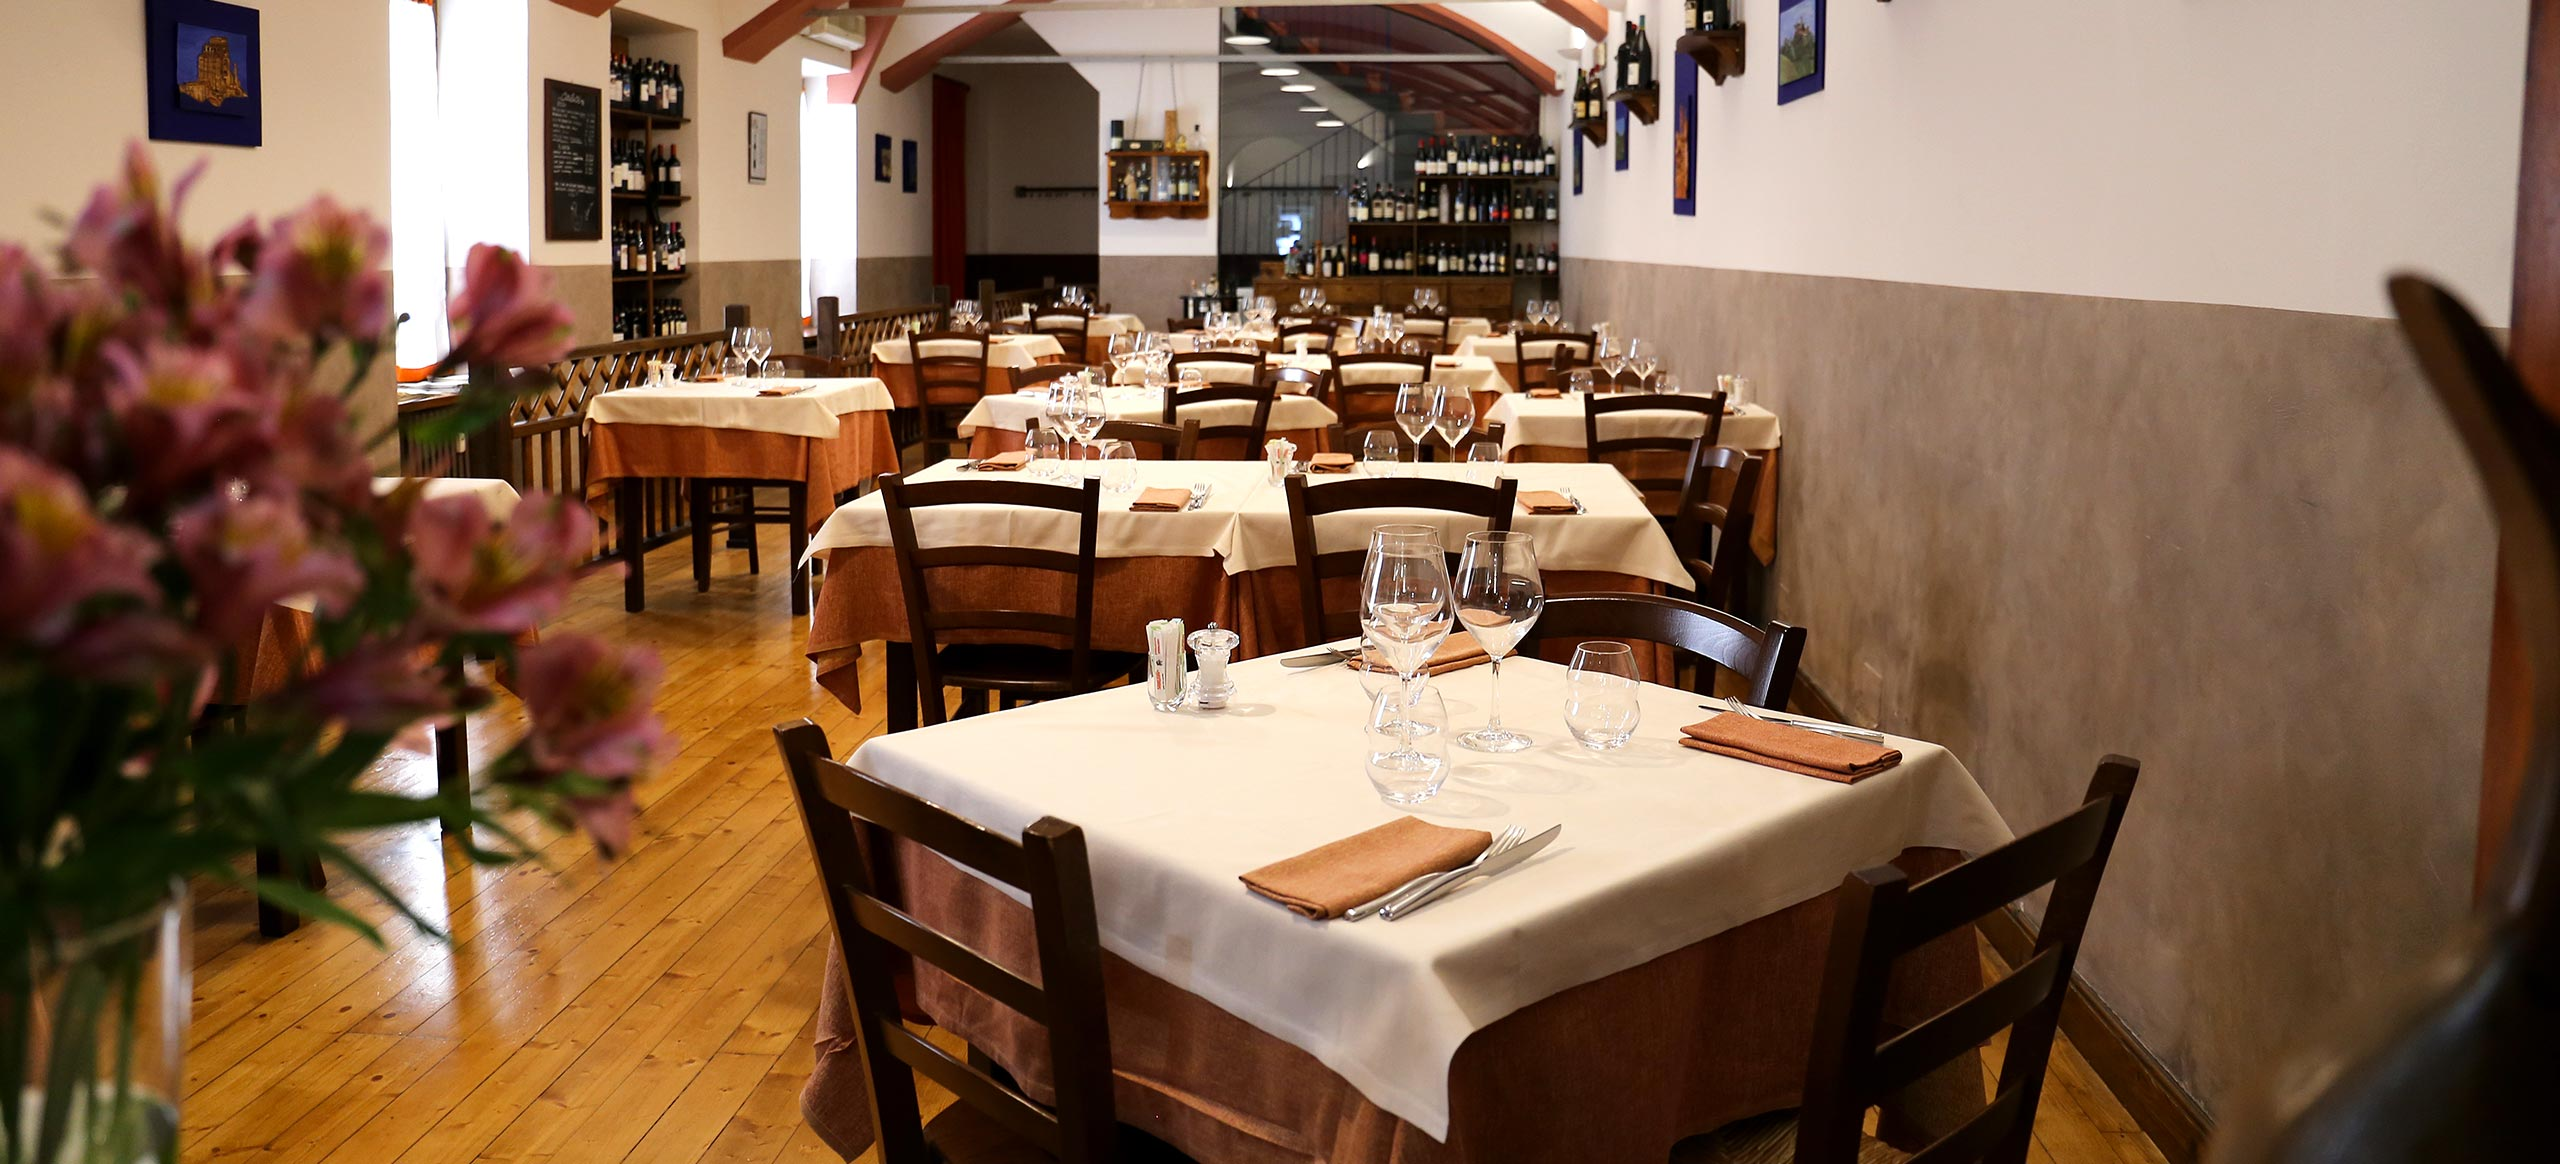 Taverna dell'oca slideshow image 2